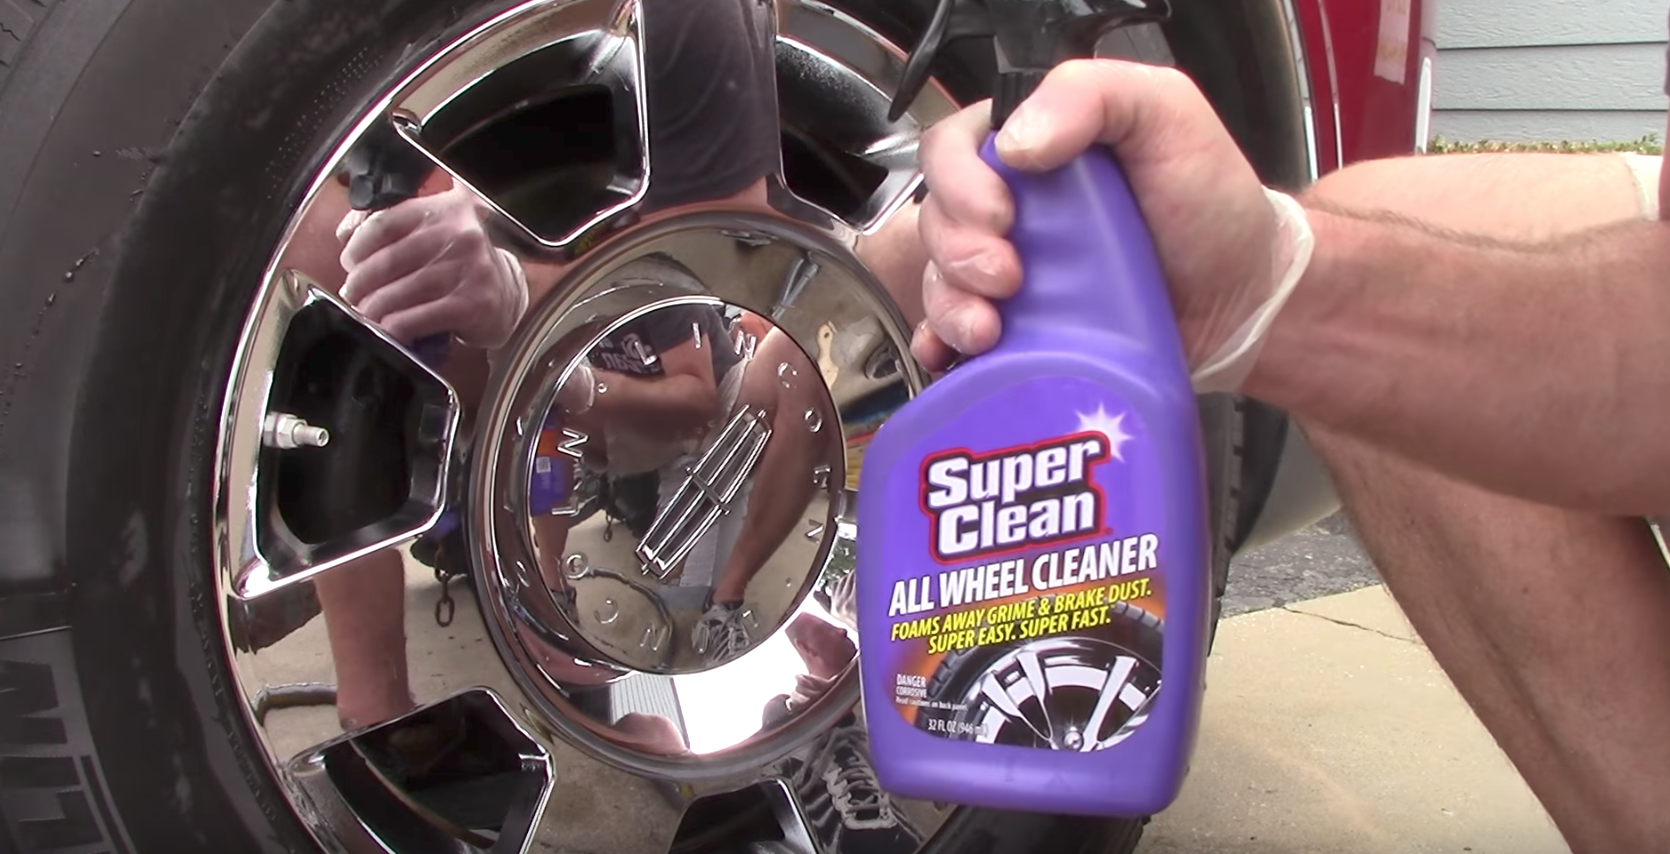 SuperClean All Wheel Cleaner shines up your wheels, making